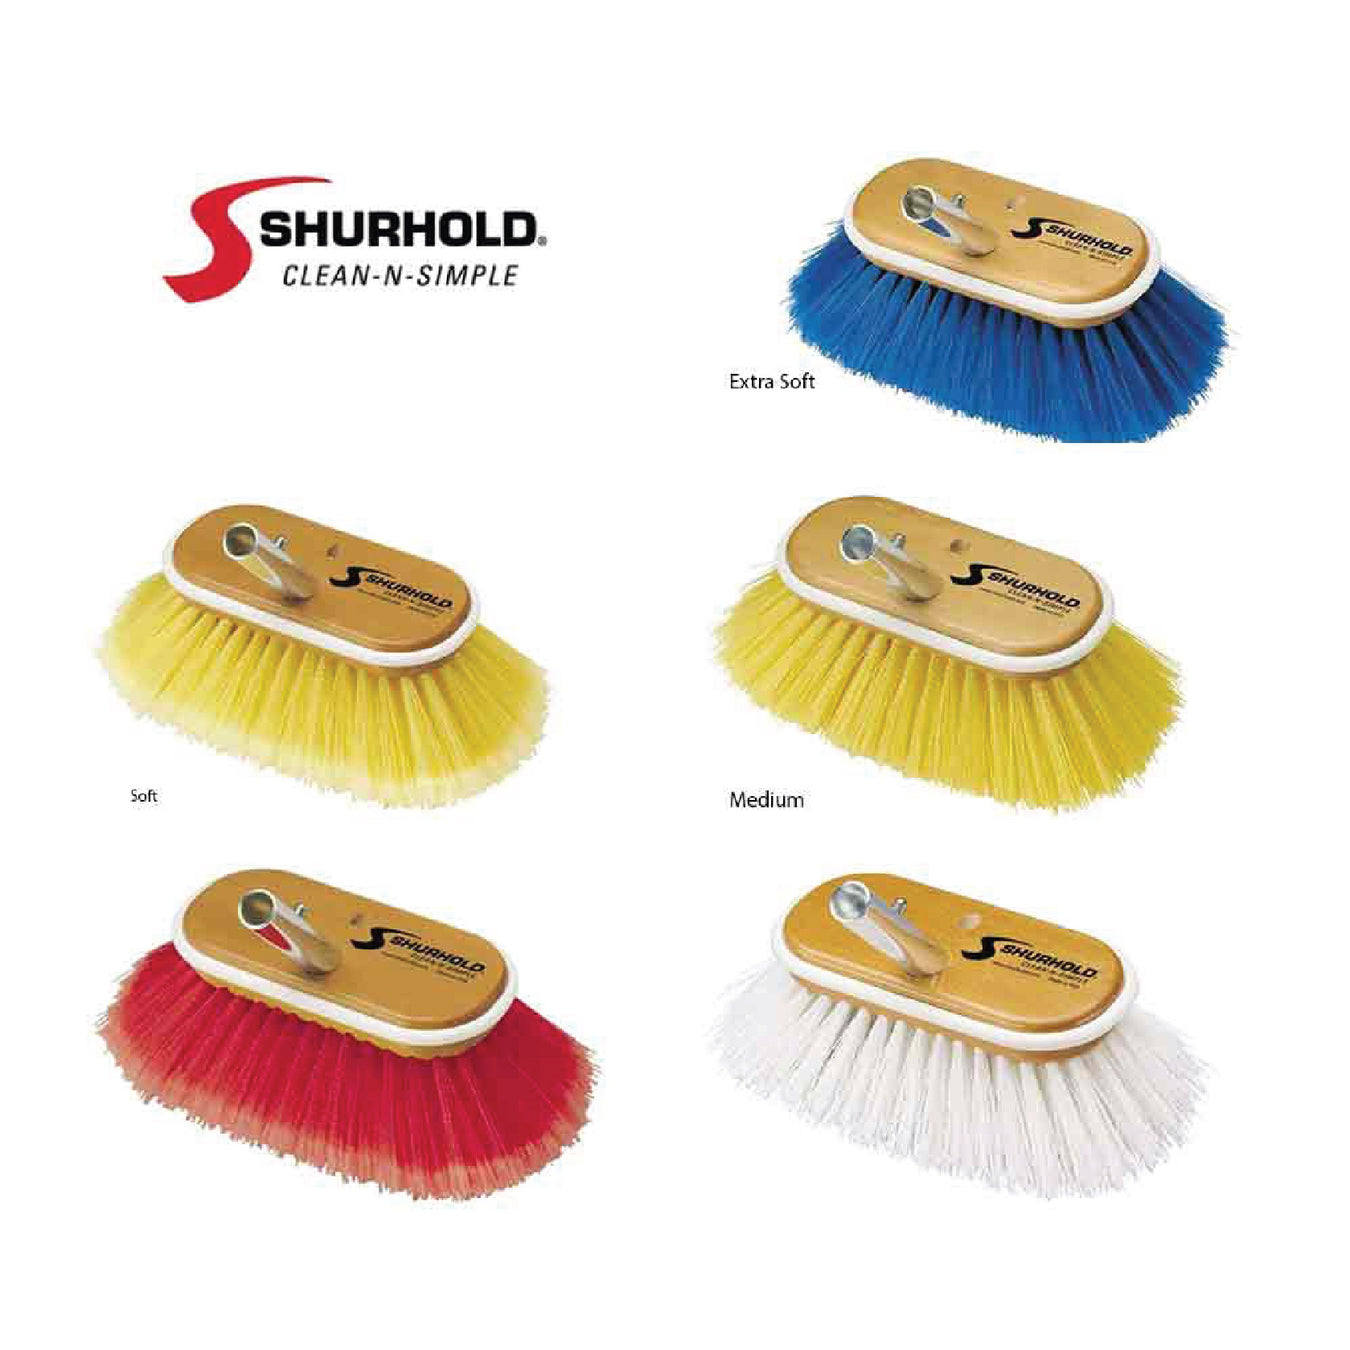 Shurhold - Clean, Polish, Protect